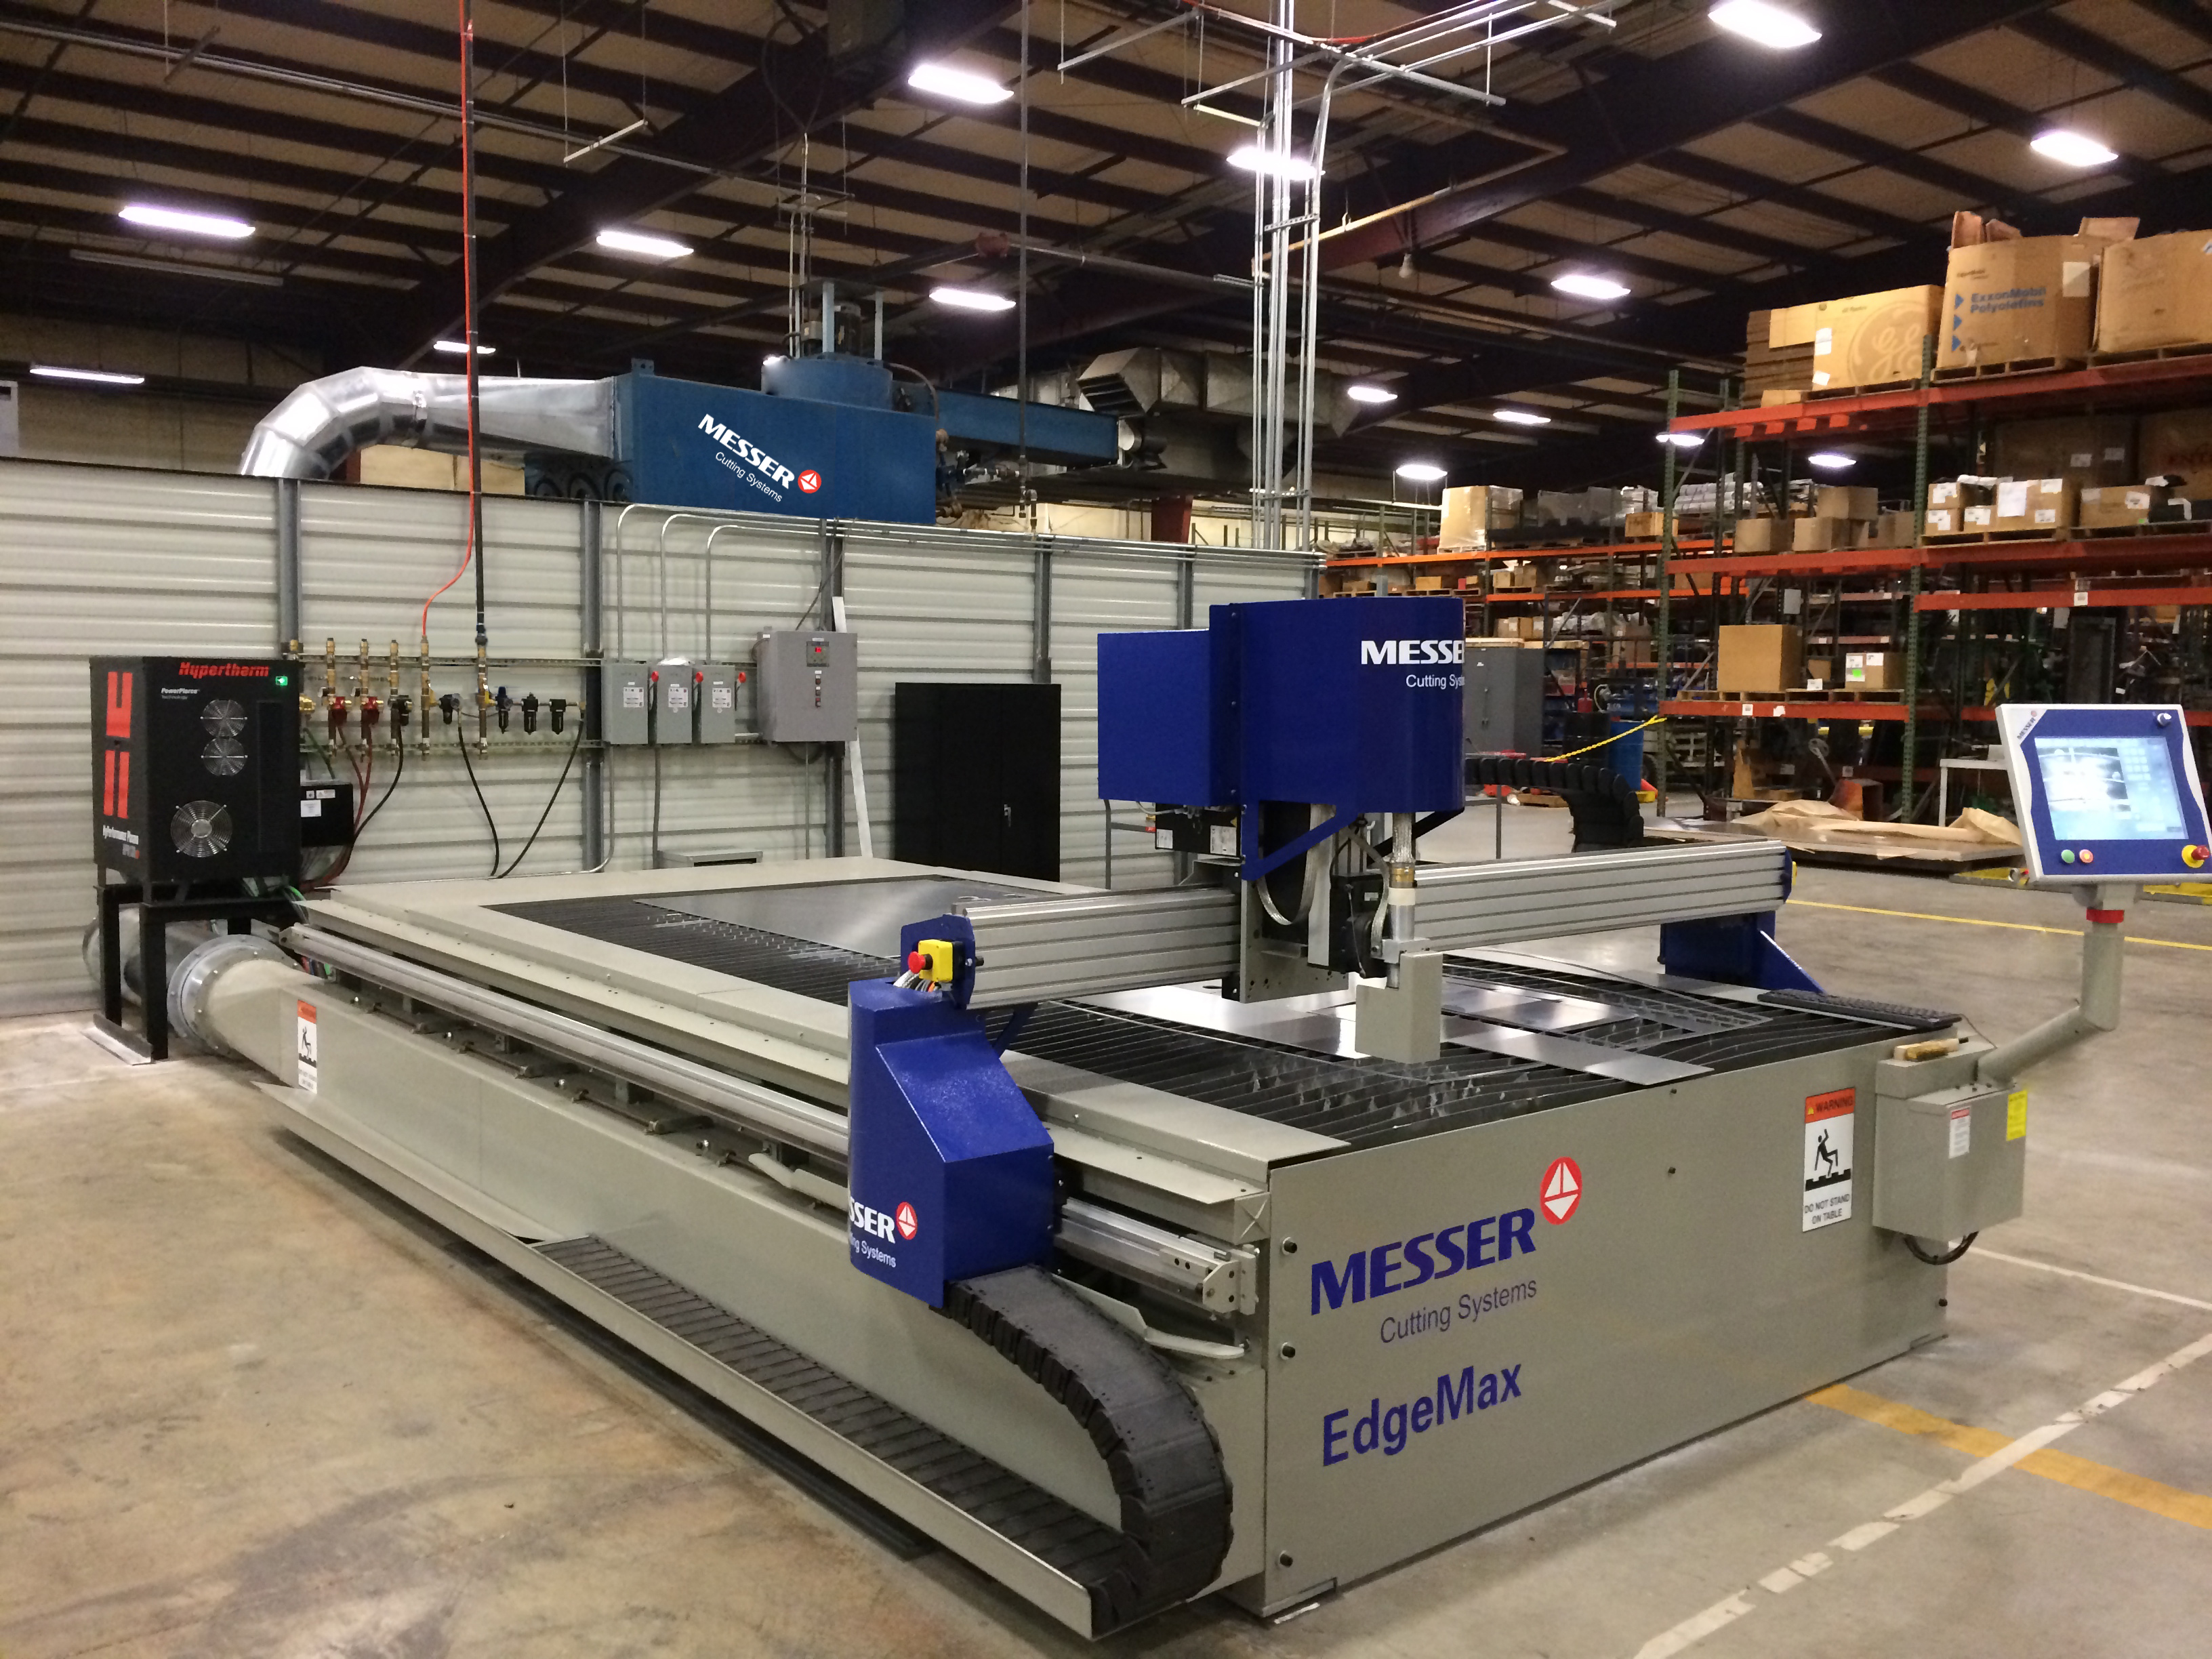 Messer Cutting Systems, Inc.